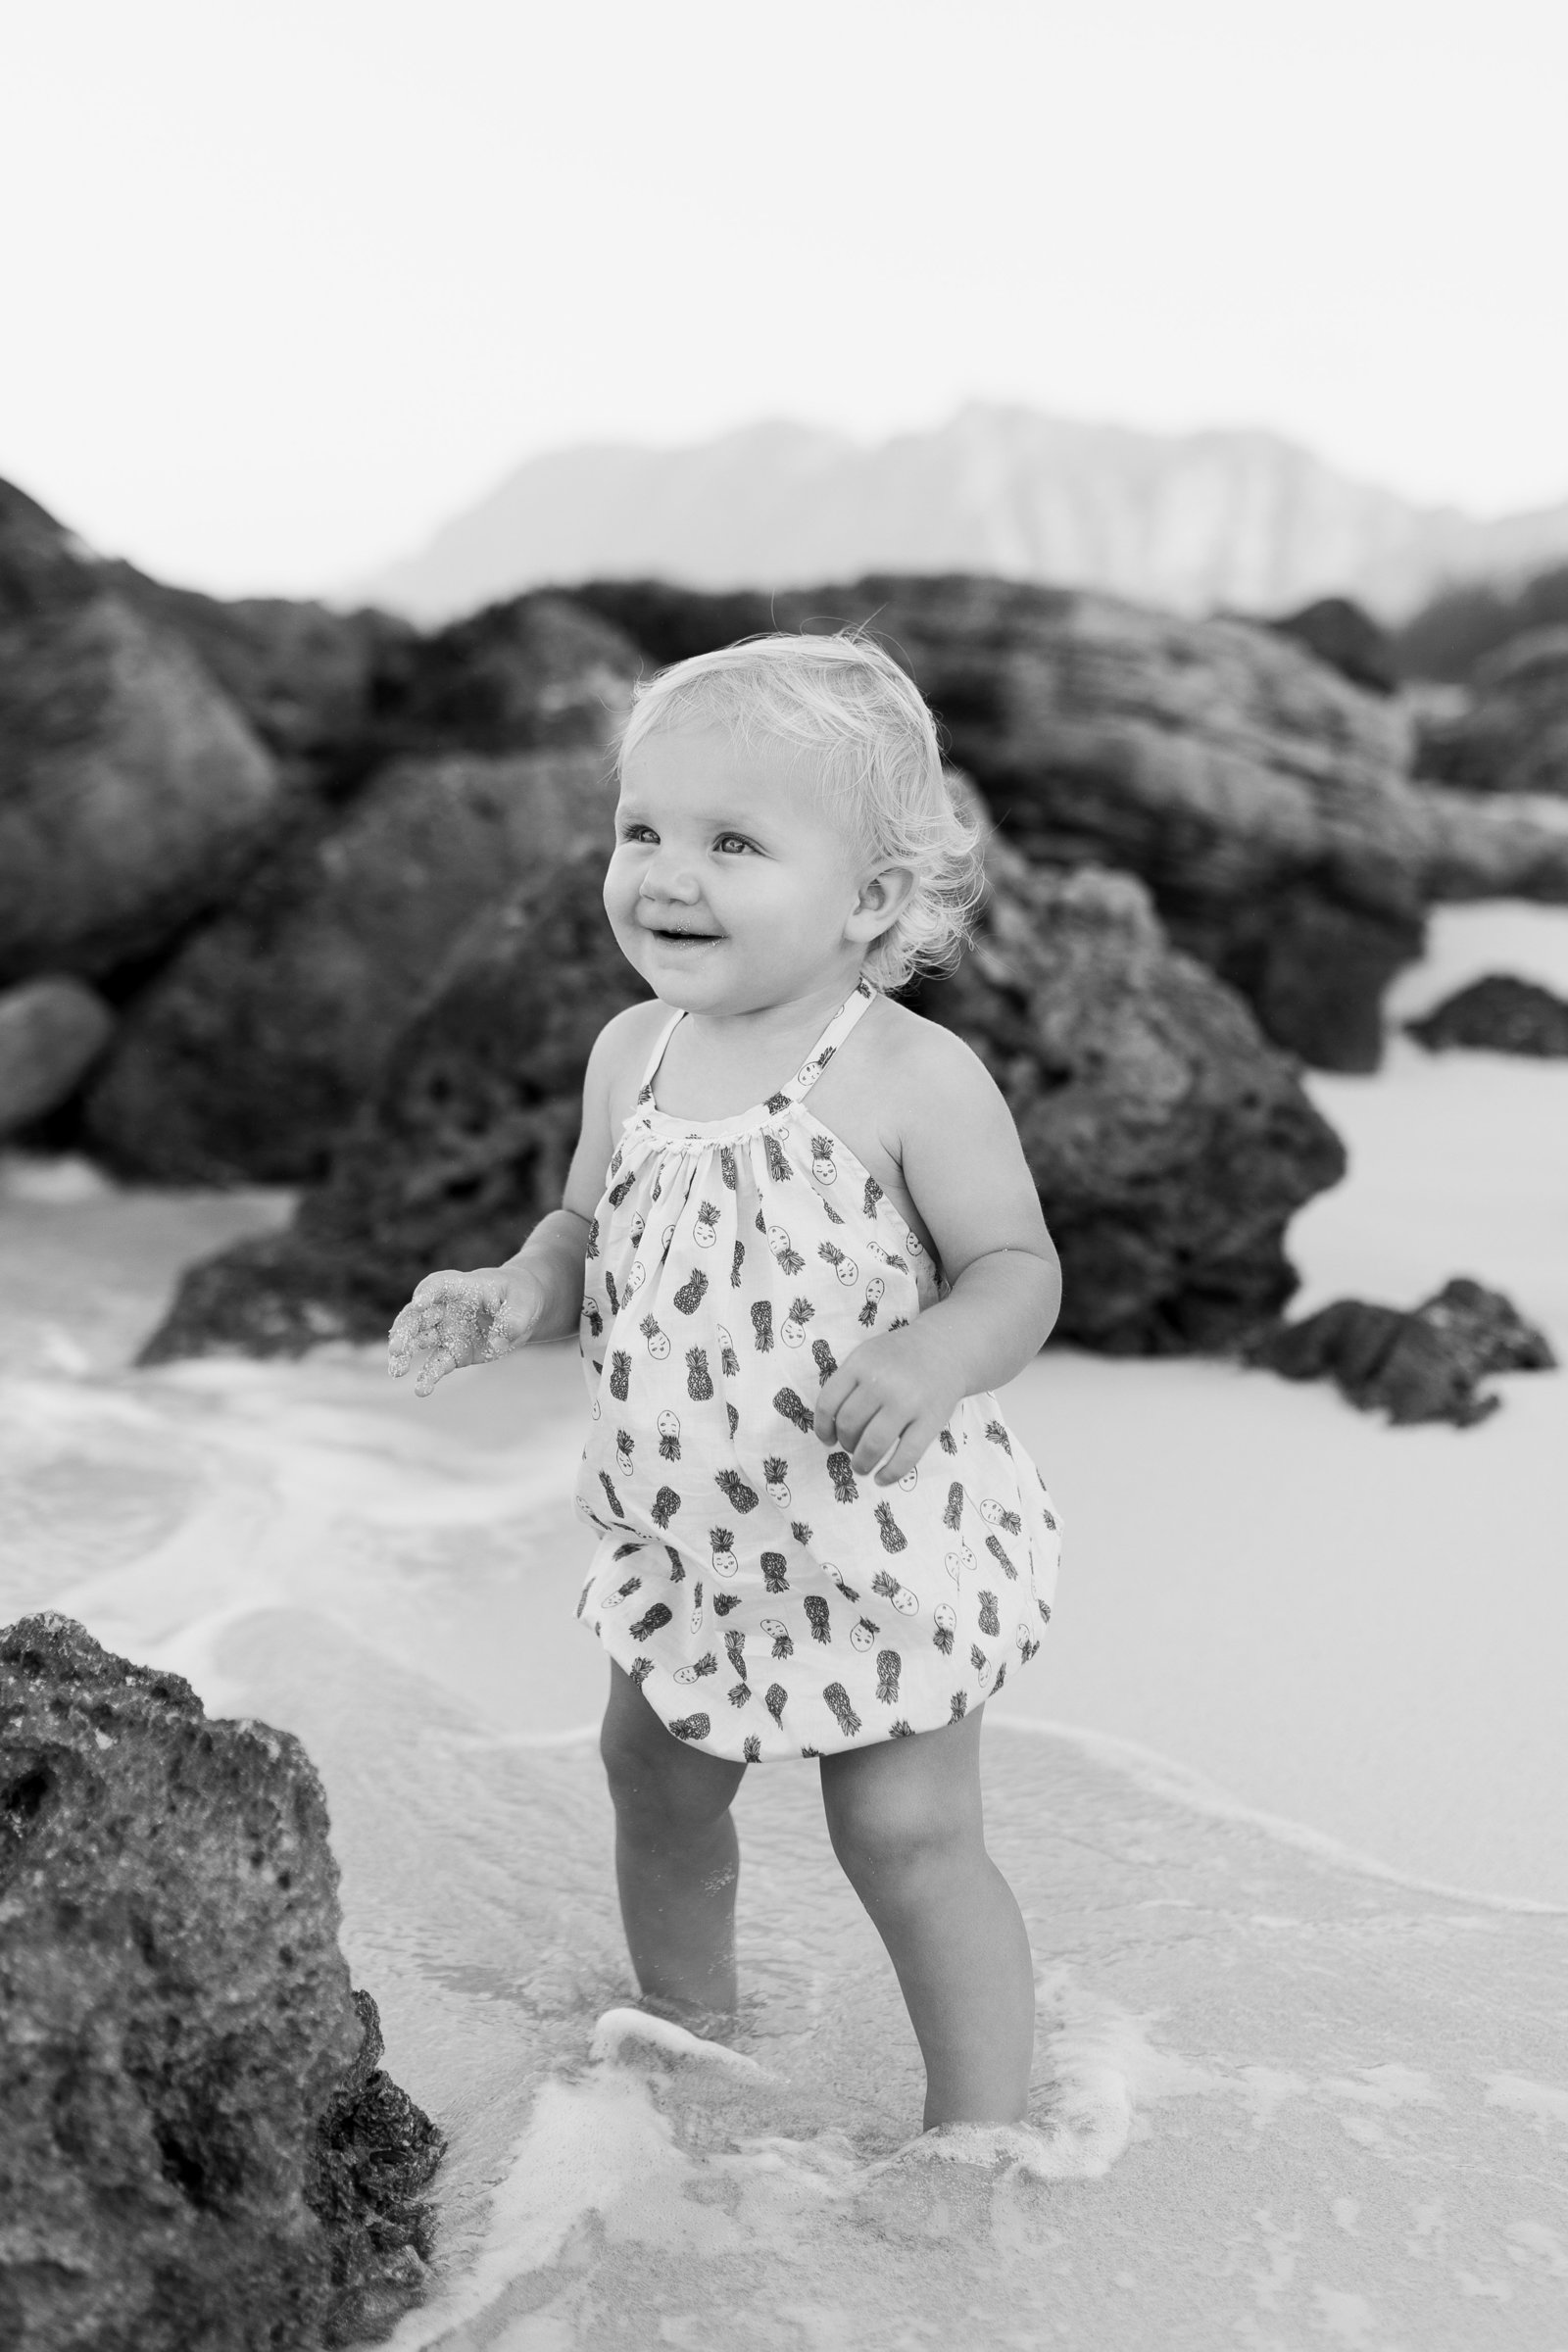 Oahu, Hawaii Lifestyle Photographer - Lifestyle Photography - Brooke Flanagan Photography - Little Girl by the Water